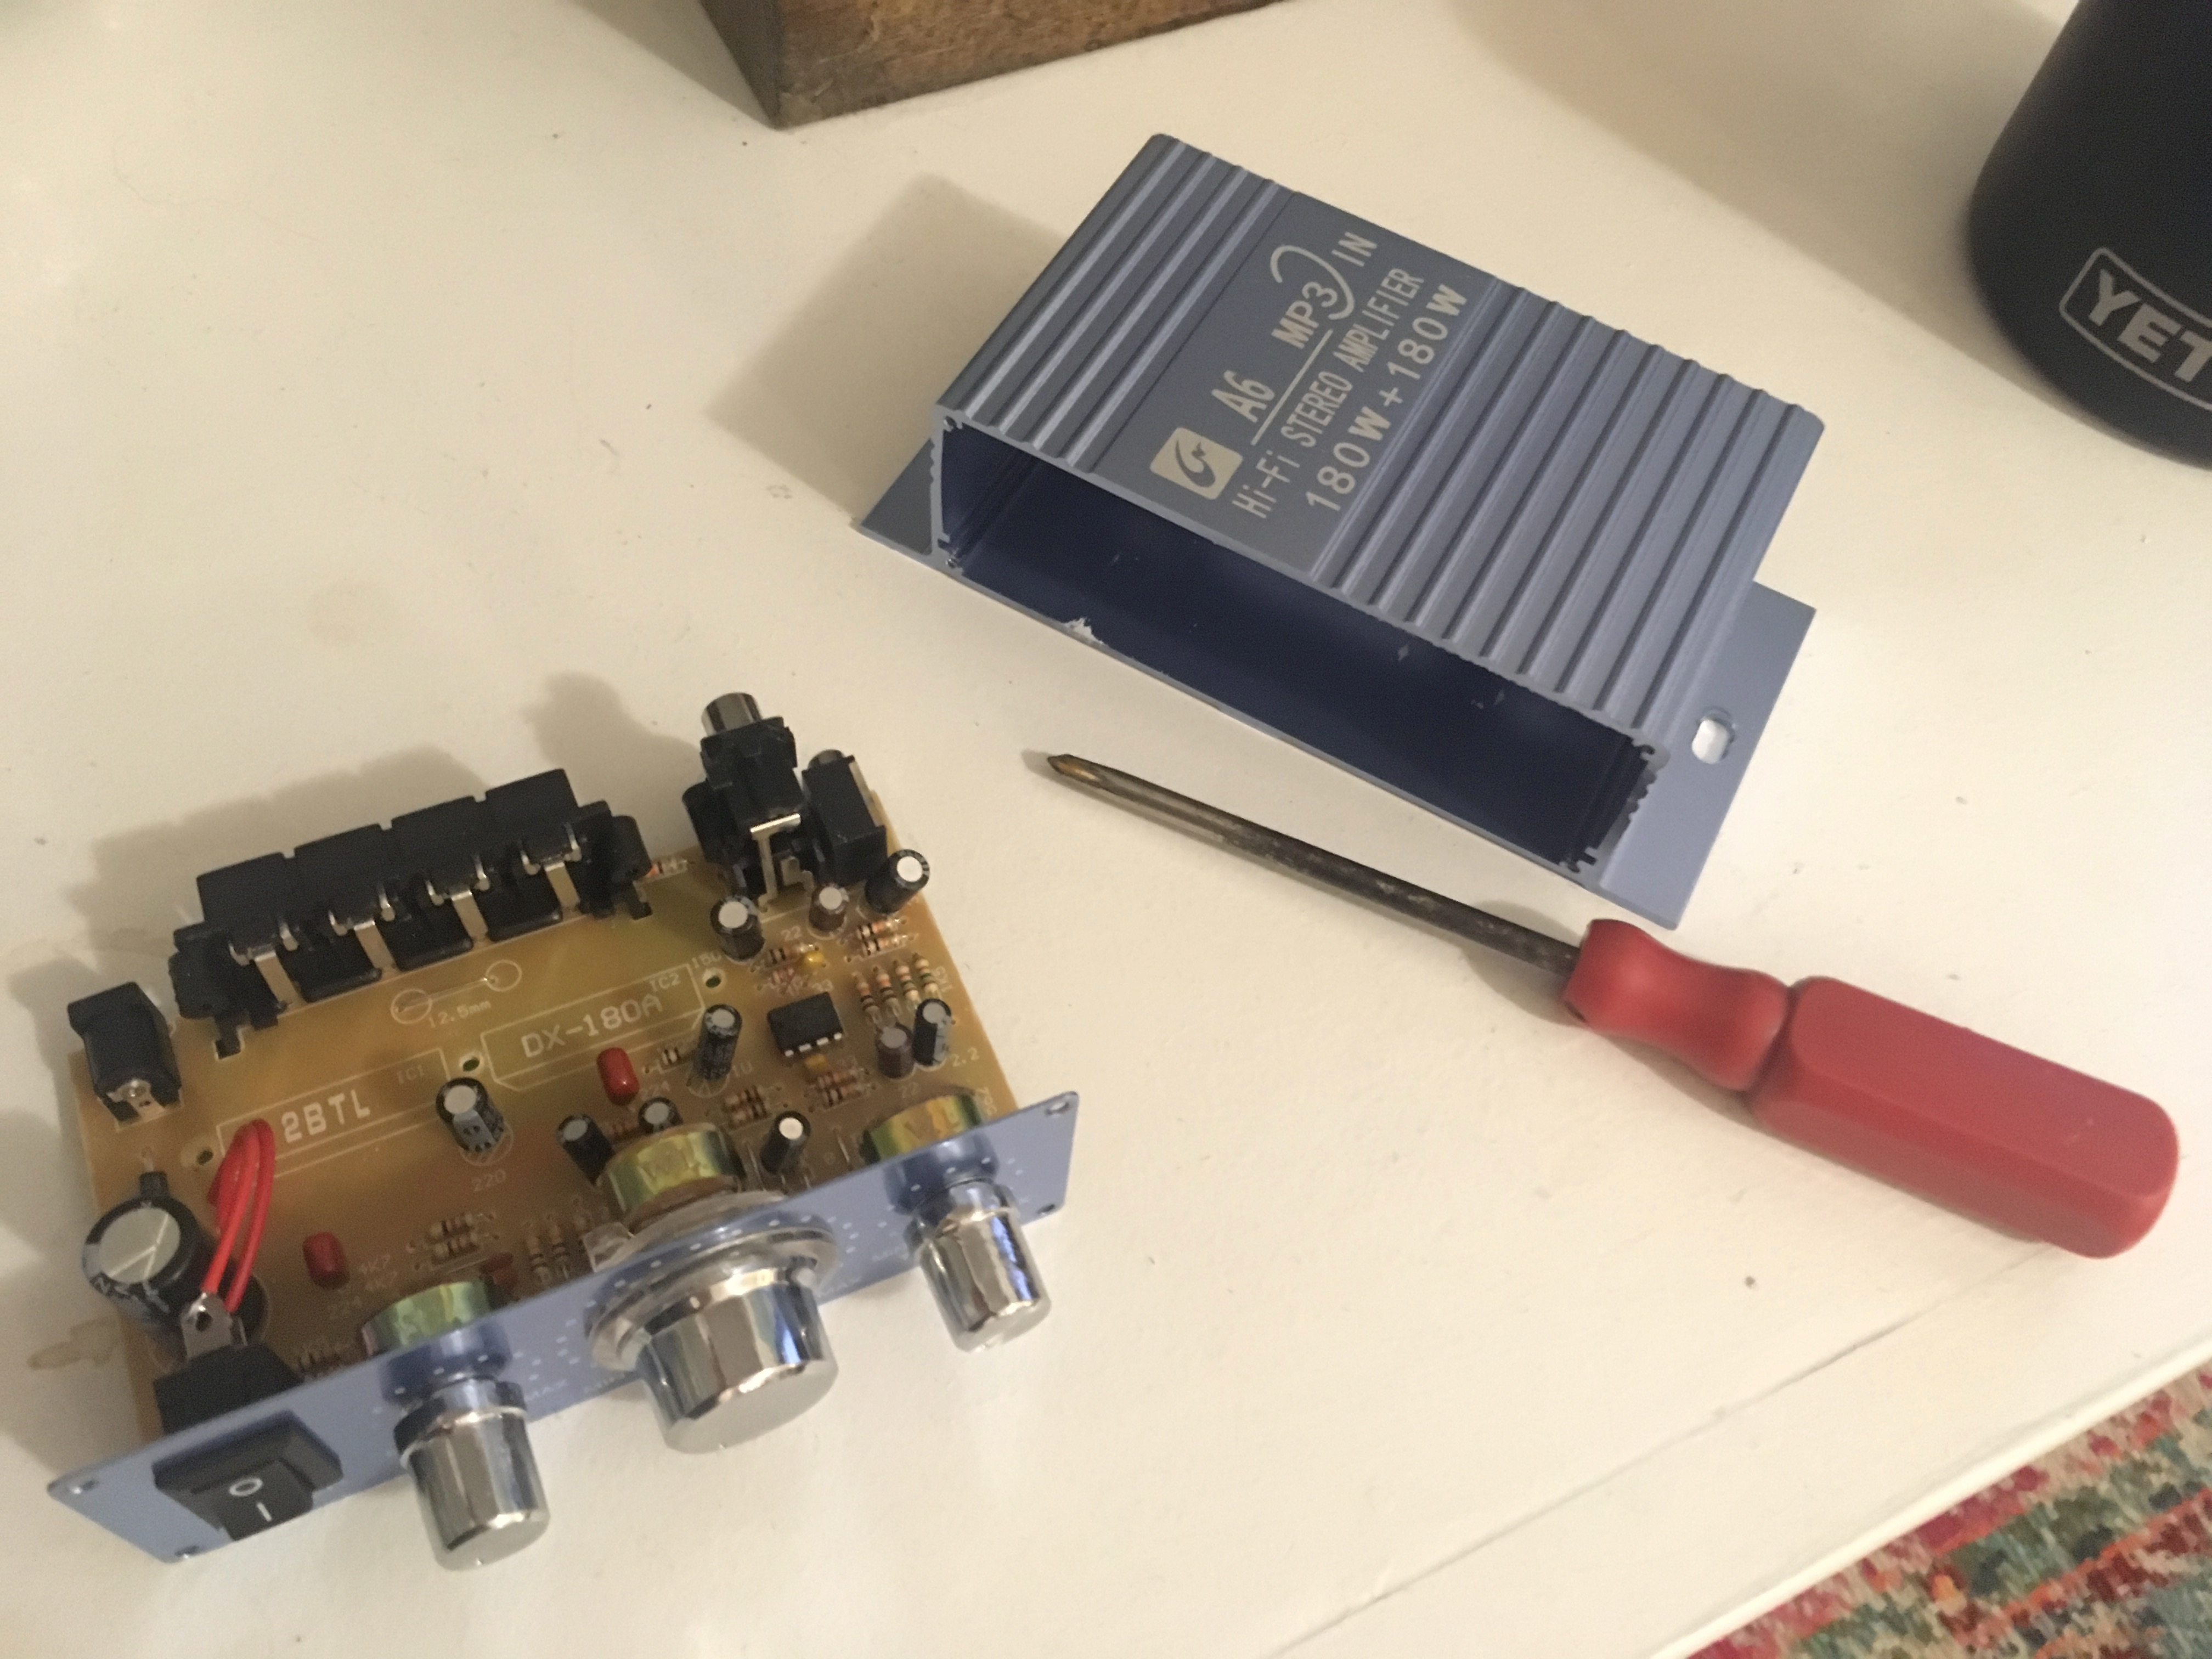 the amp's guts